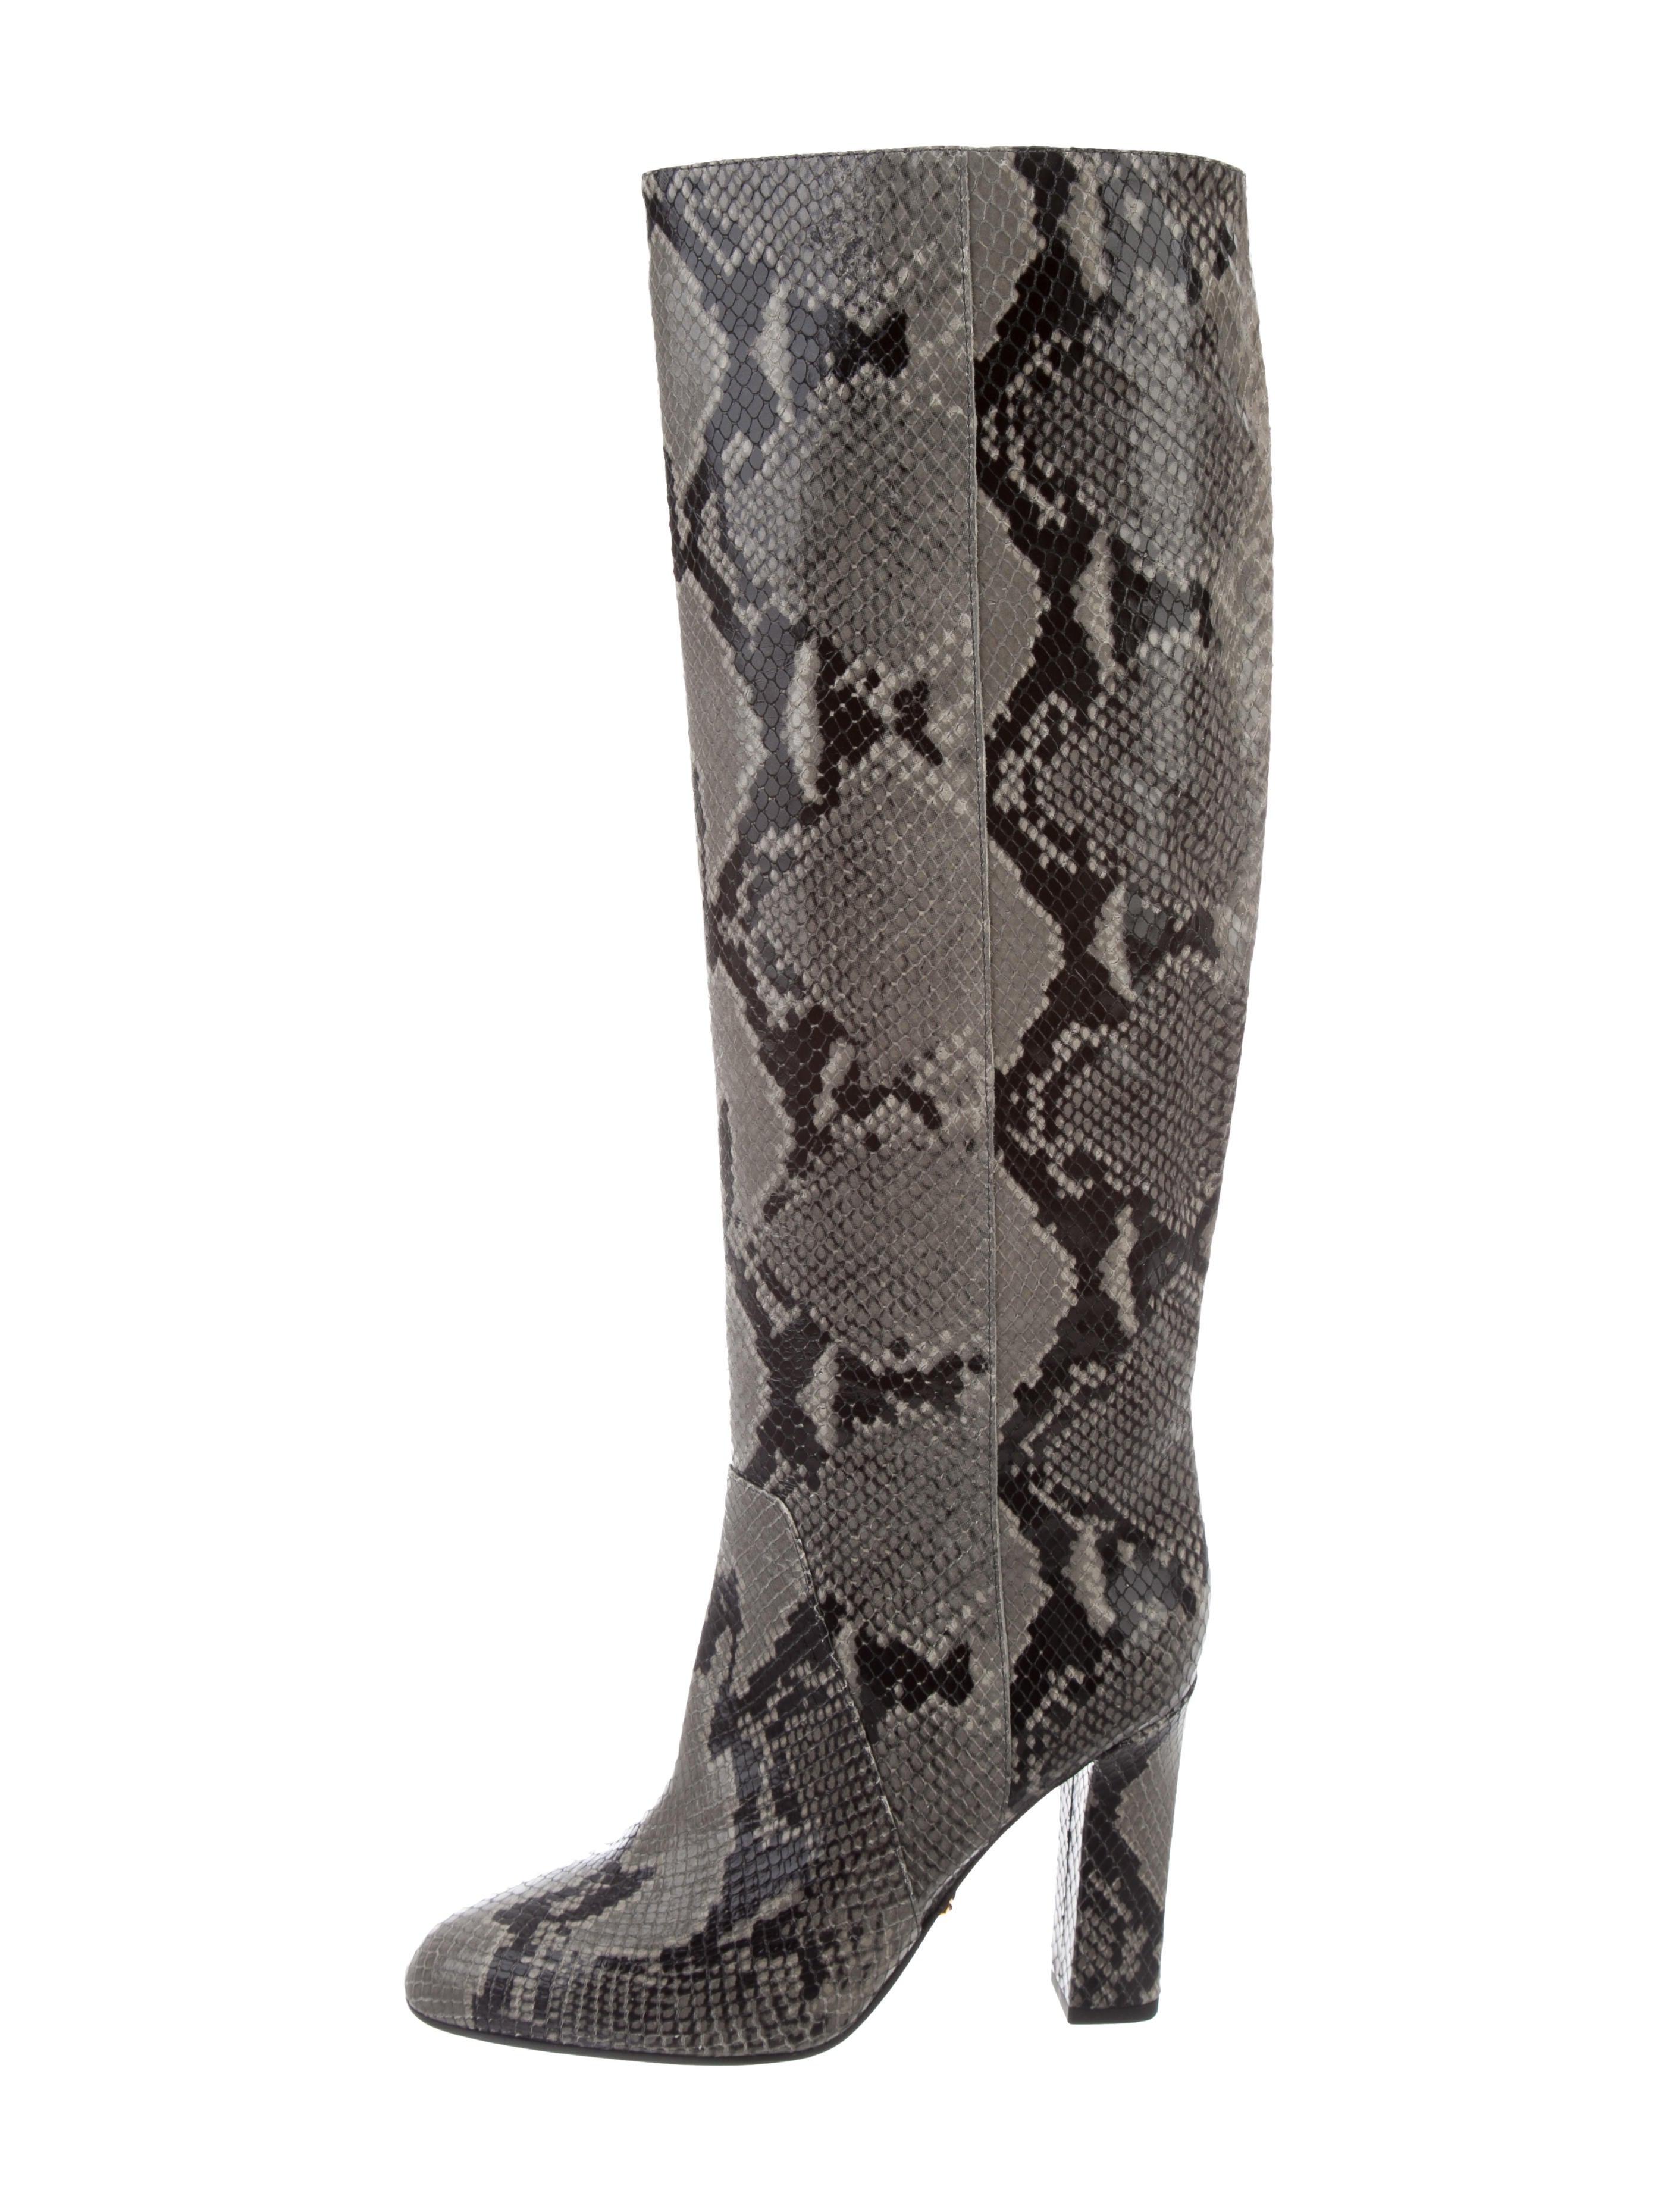 sale websites Diane von Furstenberg Gladys Knee-High Boots w/ Tags cheap wholesale excellent cheap online QBoOhJwLus